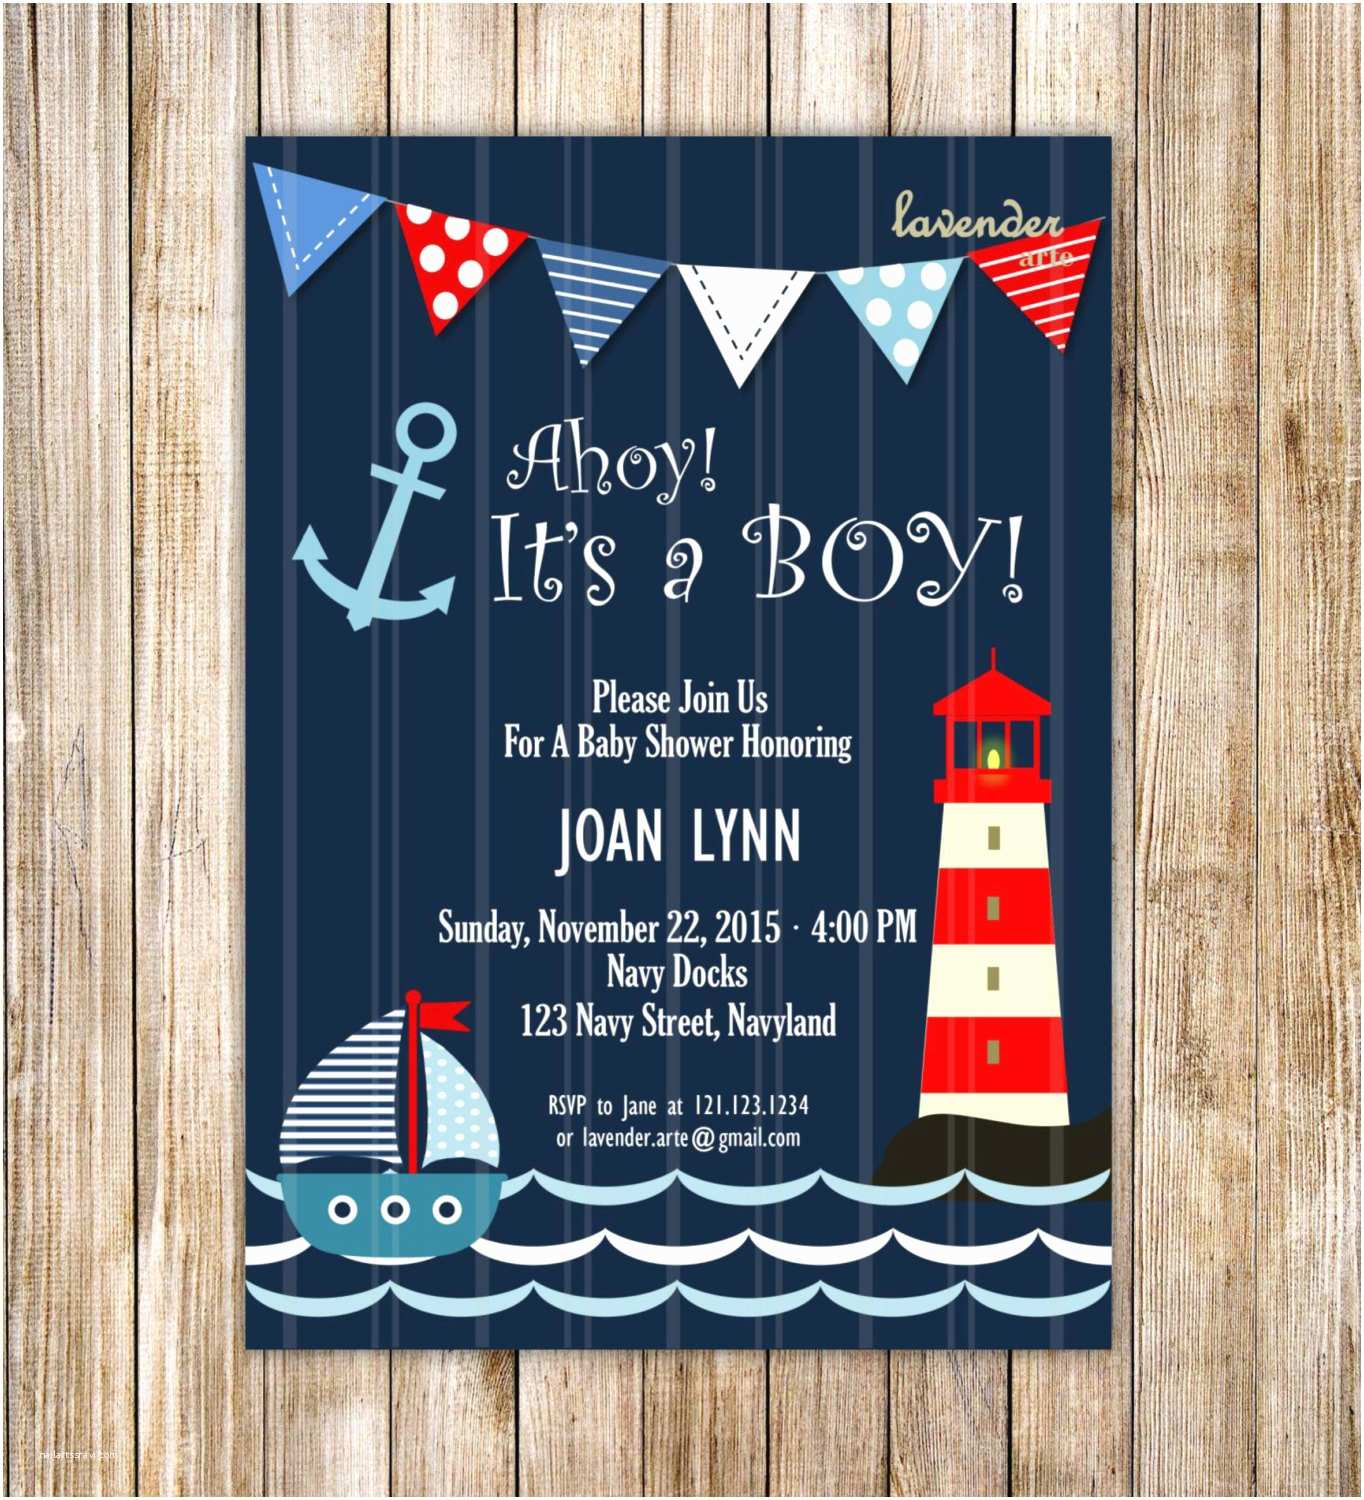 Nautical themed Baby Shower Invitations Nautical theme Baby Shower Invitation Various Invitation